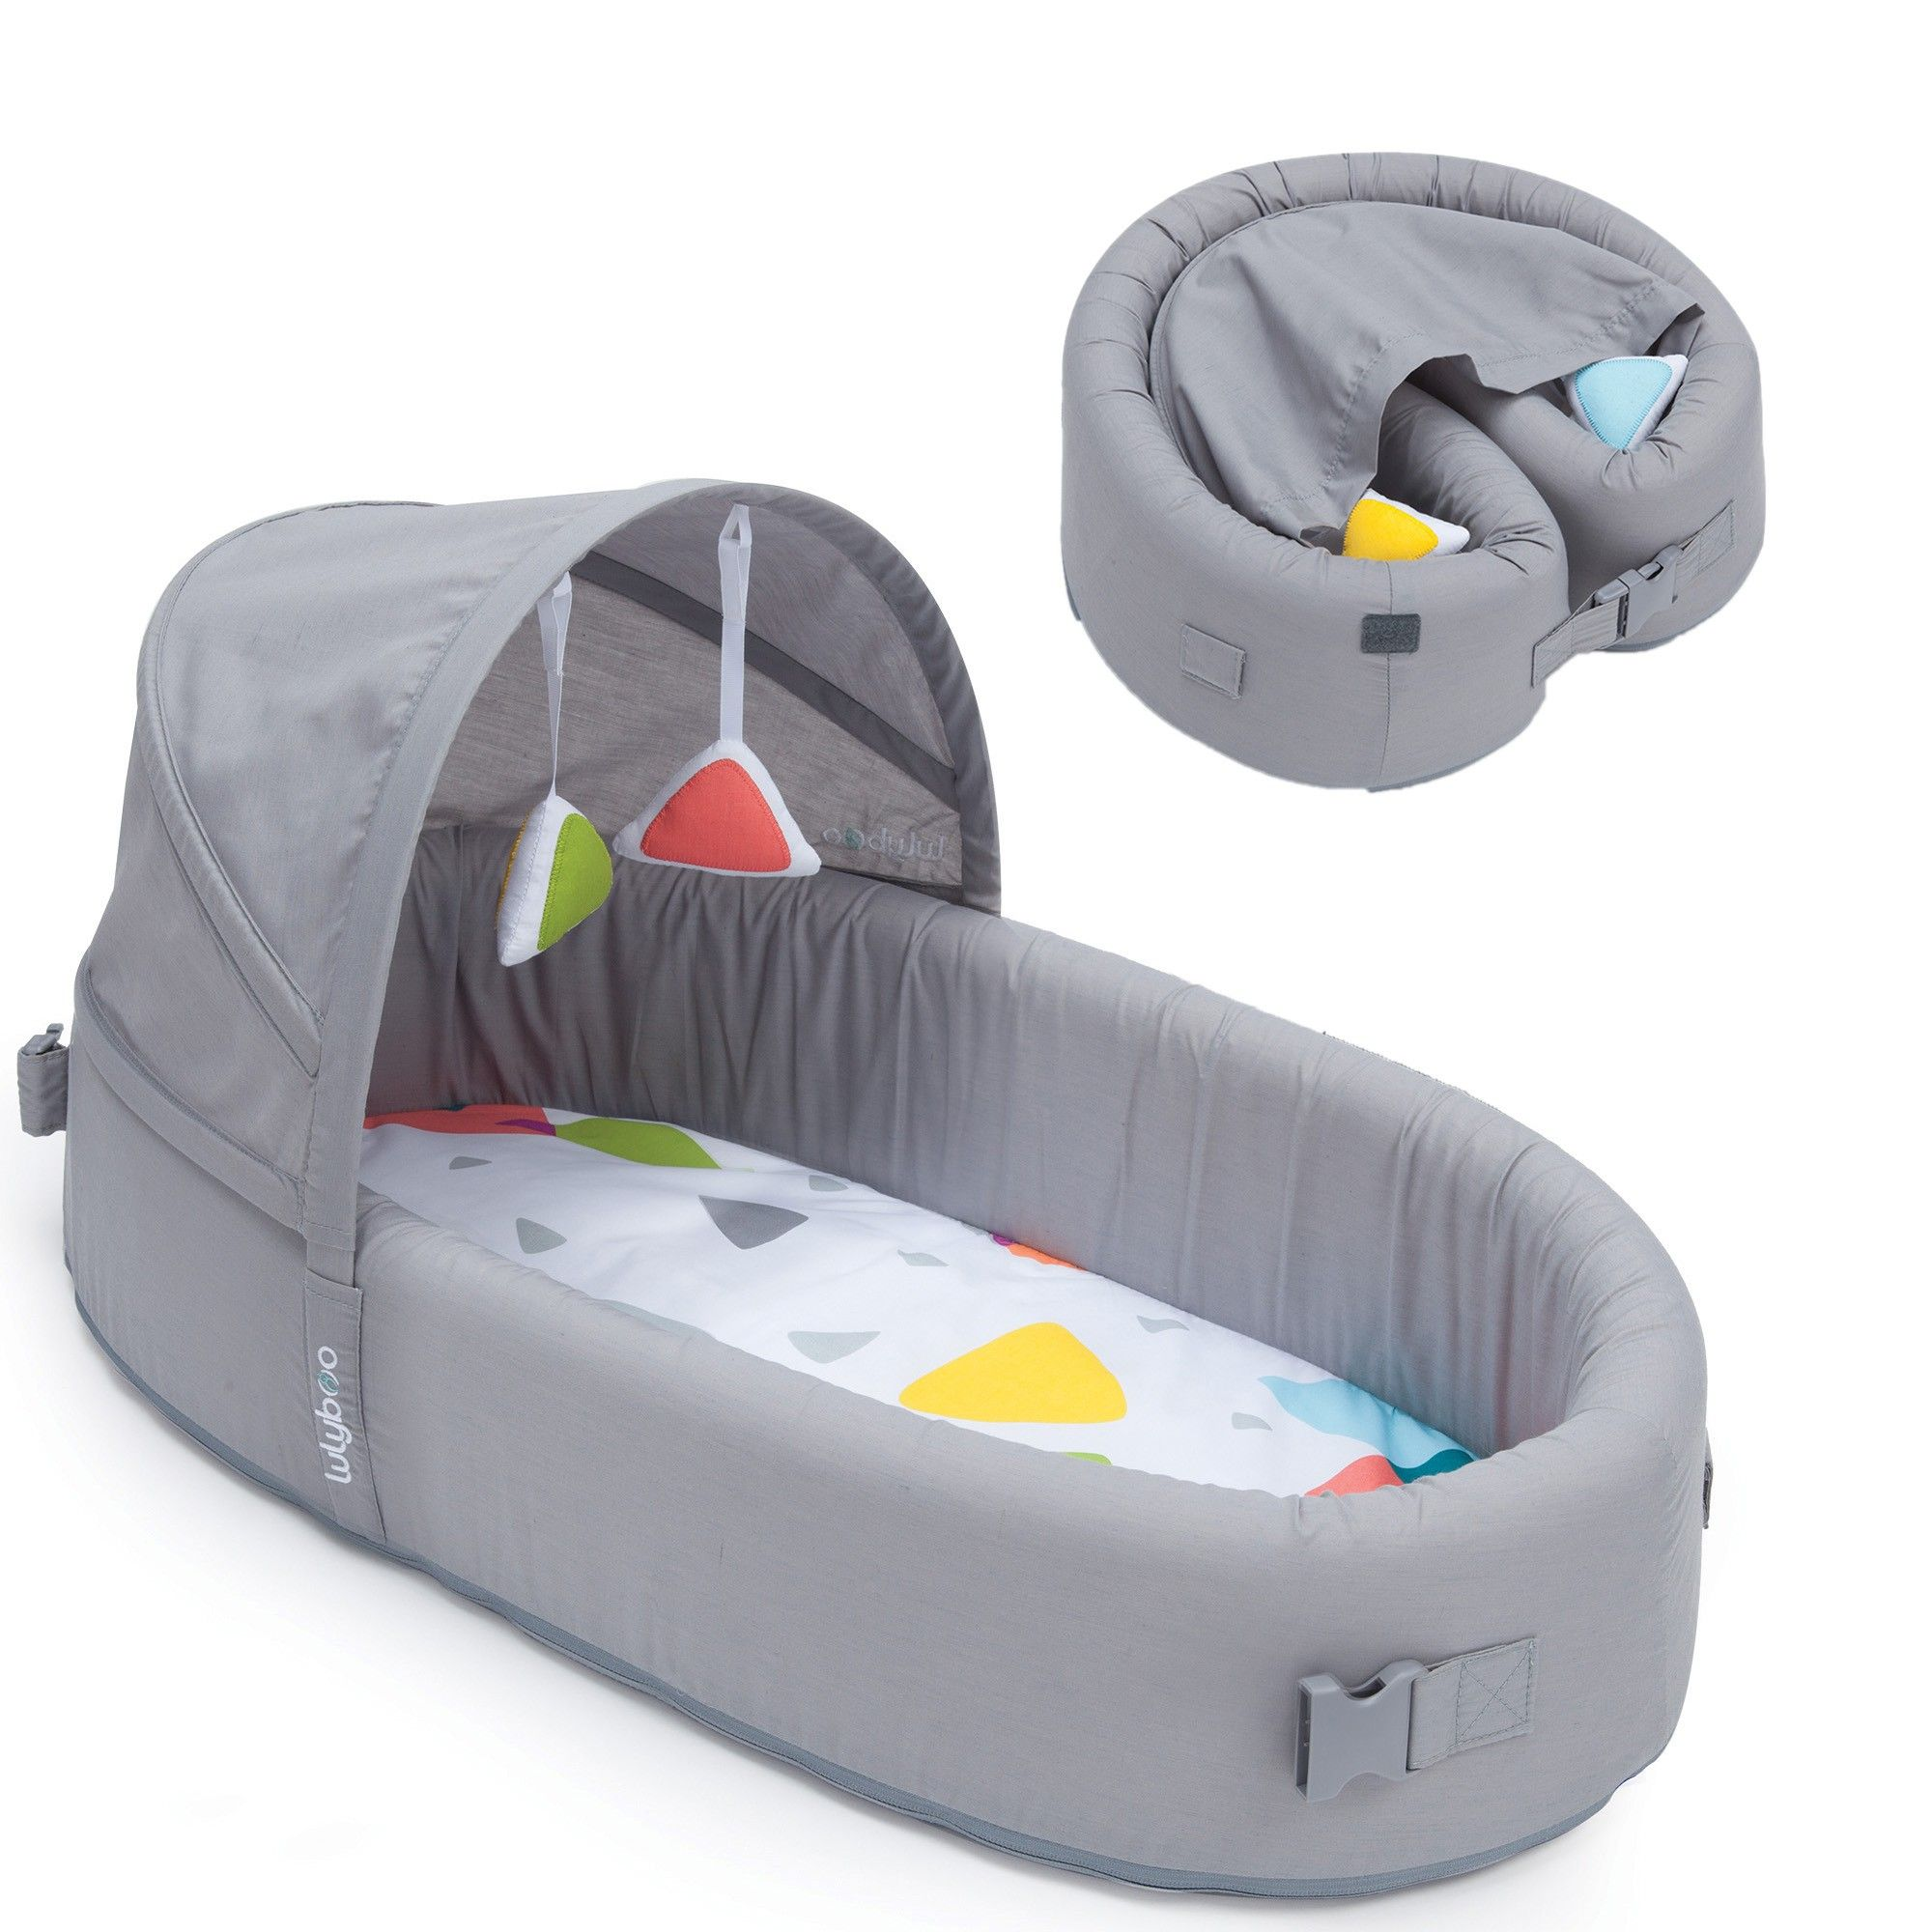 Lulyboo Baby Lounge Gray Baby Travel Bed Portable